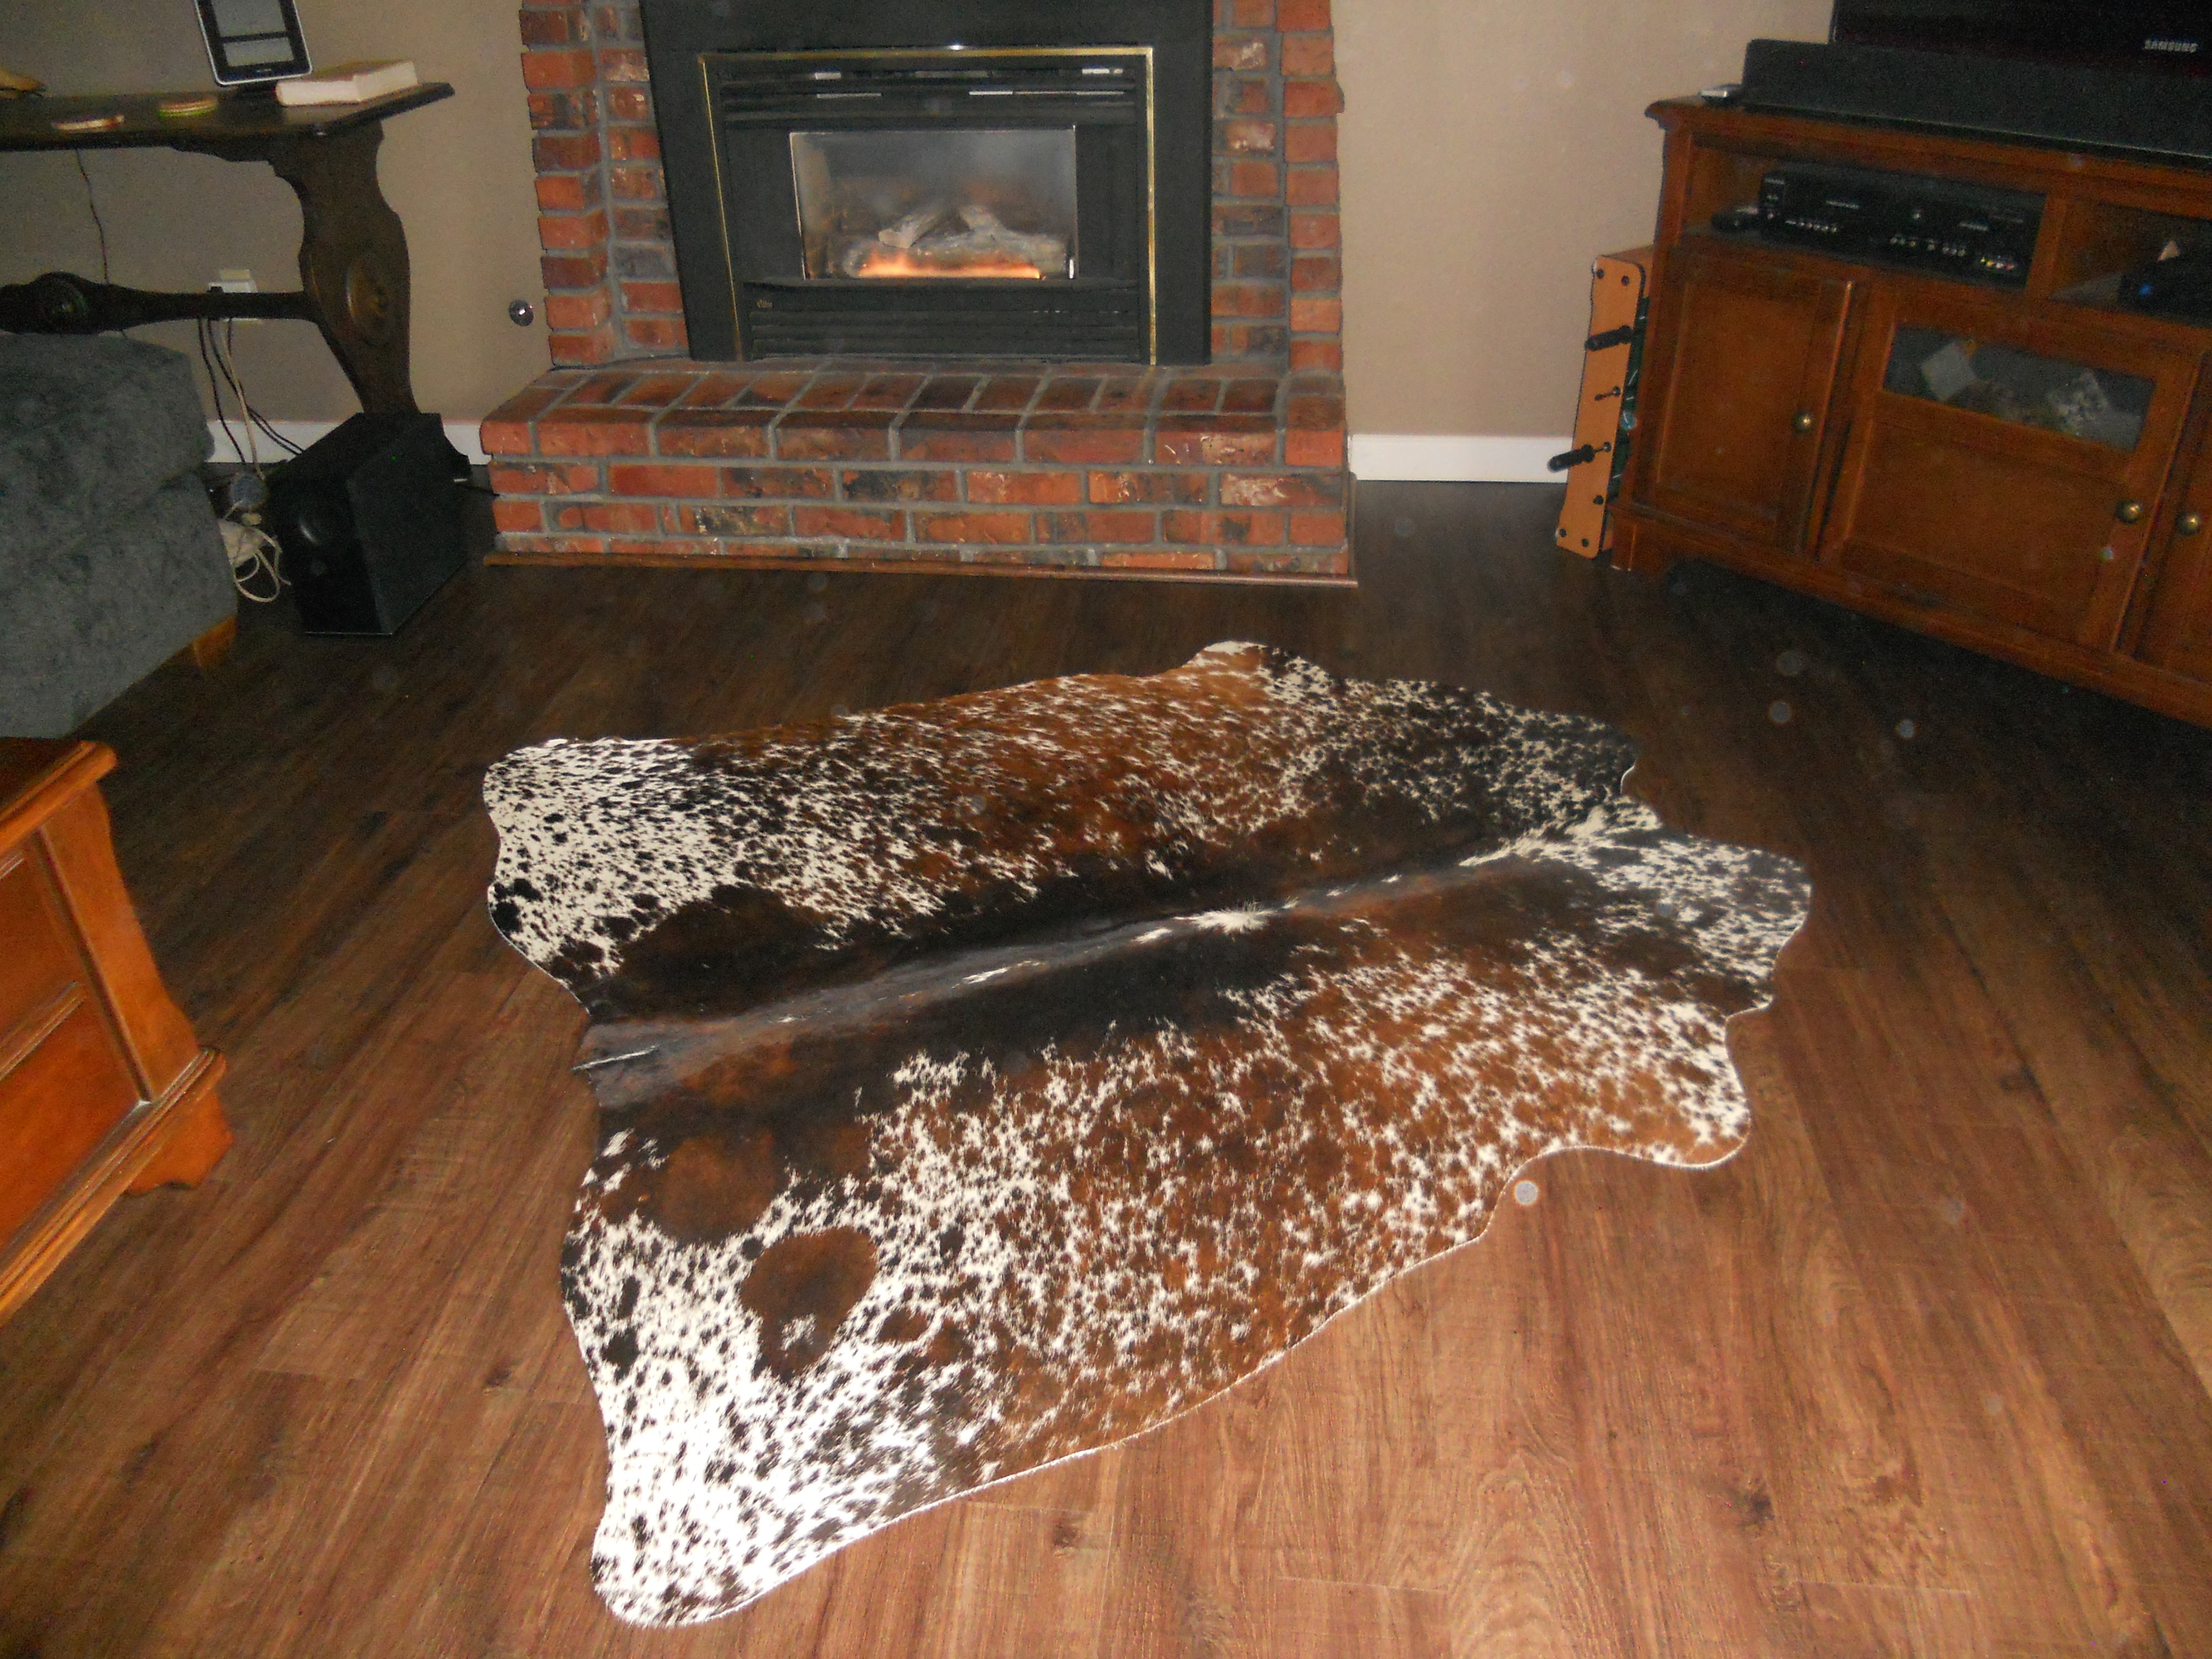 Cowhide rug on wood floor near fireplace